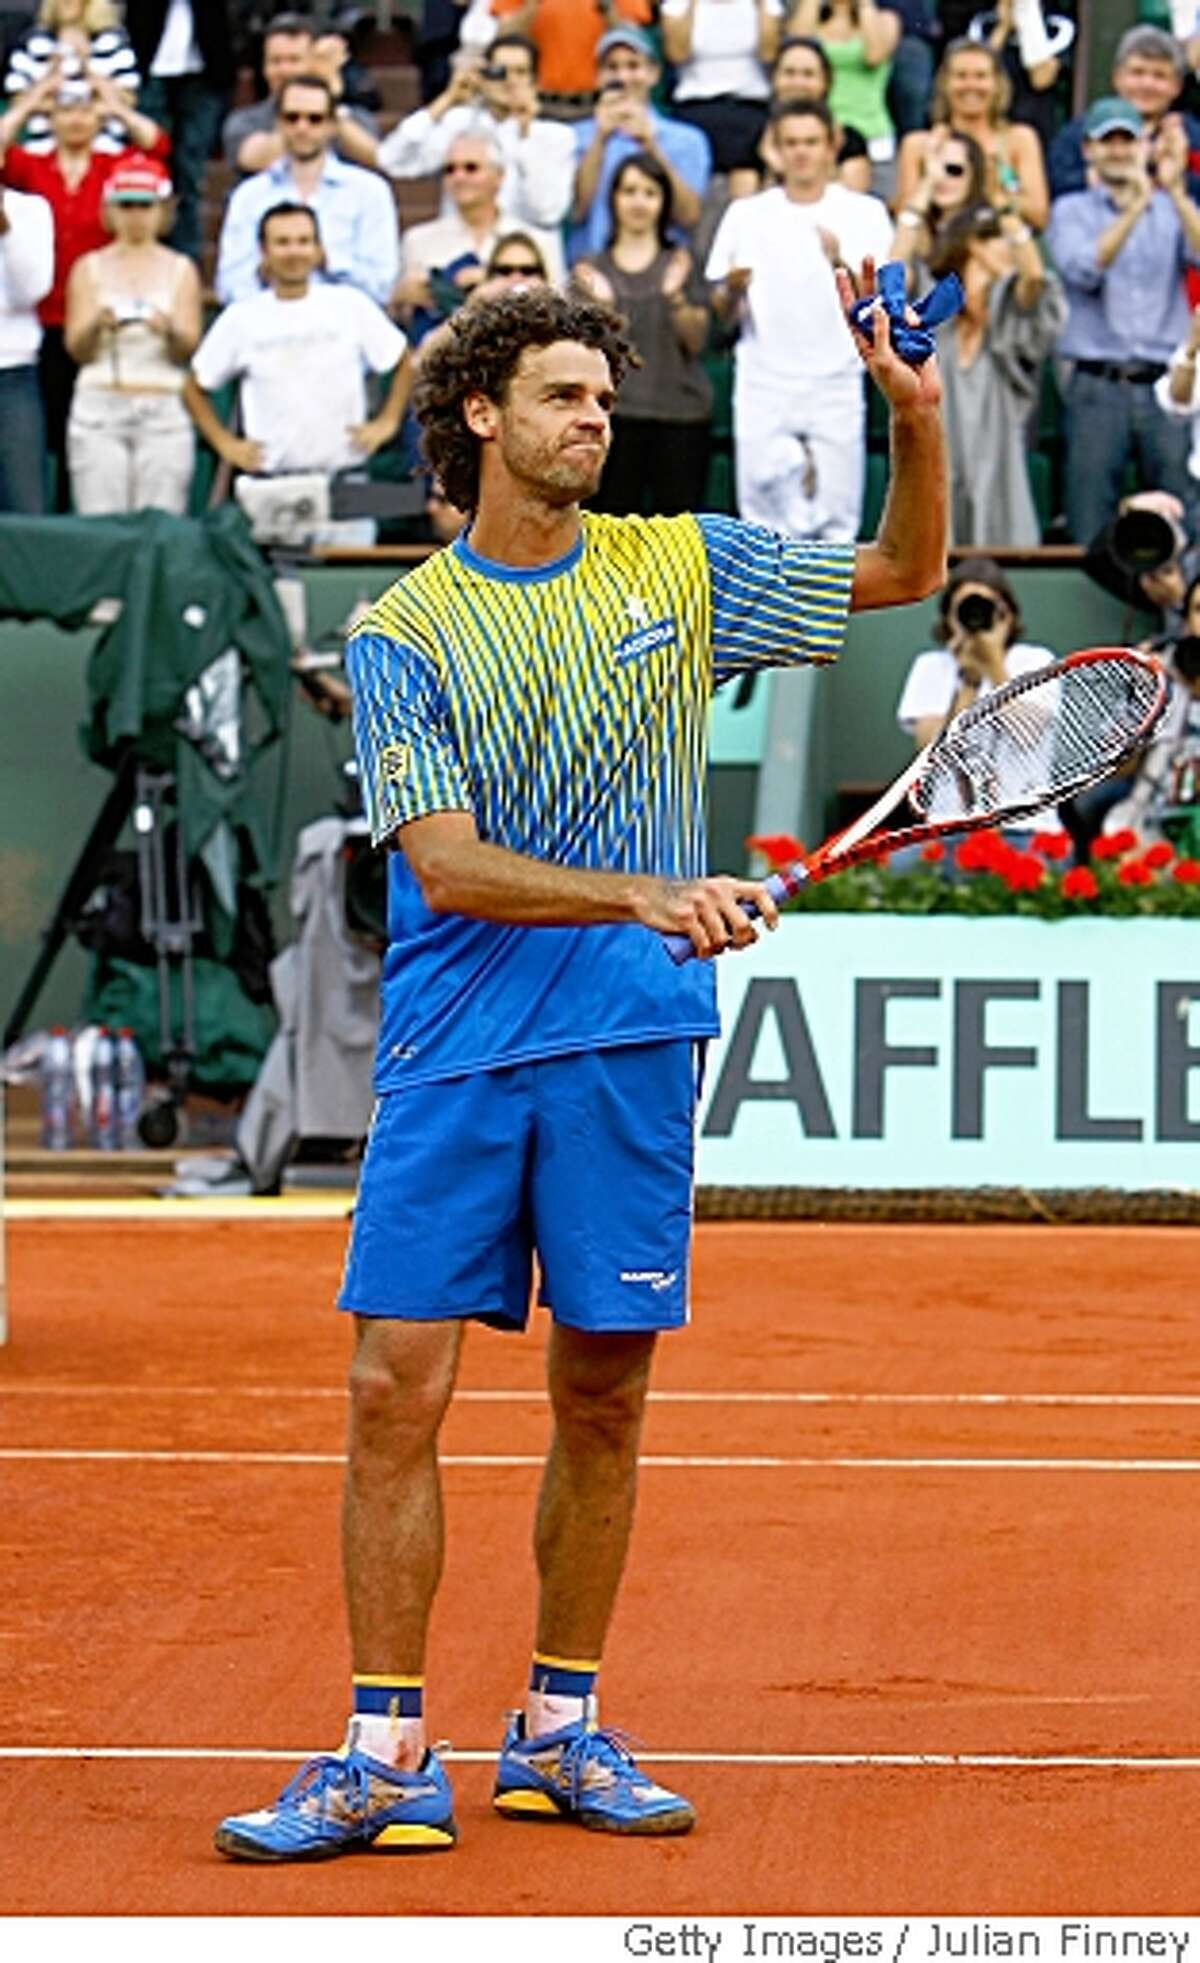 PARIS - MAY 25: Gustavo Kuerten of Brazil applauds the fans after his career ending defeat during Men's Singles first round match against Paul-Henri Mathieu of France on day one of the French Open at Roland Garros on May 25, 2008 in Paris, France. The French Open with be Kuertens last tournament before retiring (Photo by Julian Finney/Getty Images)